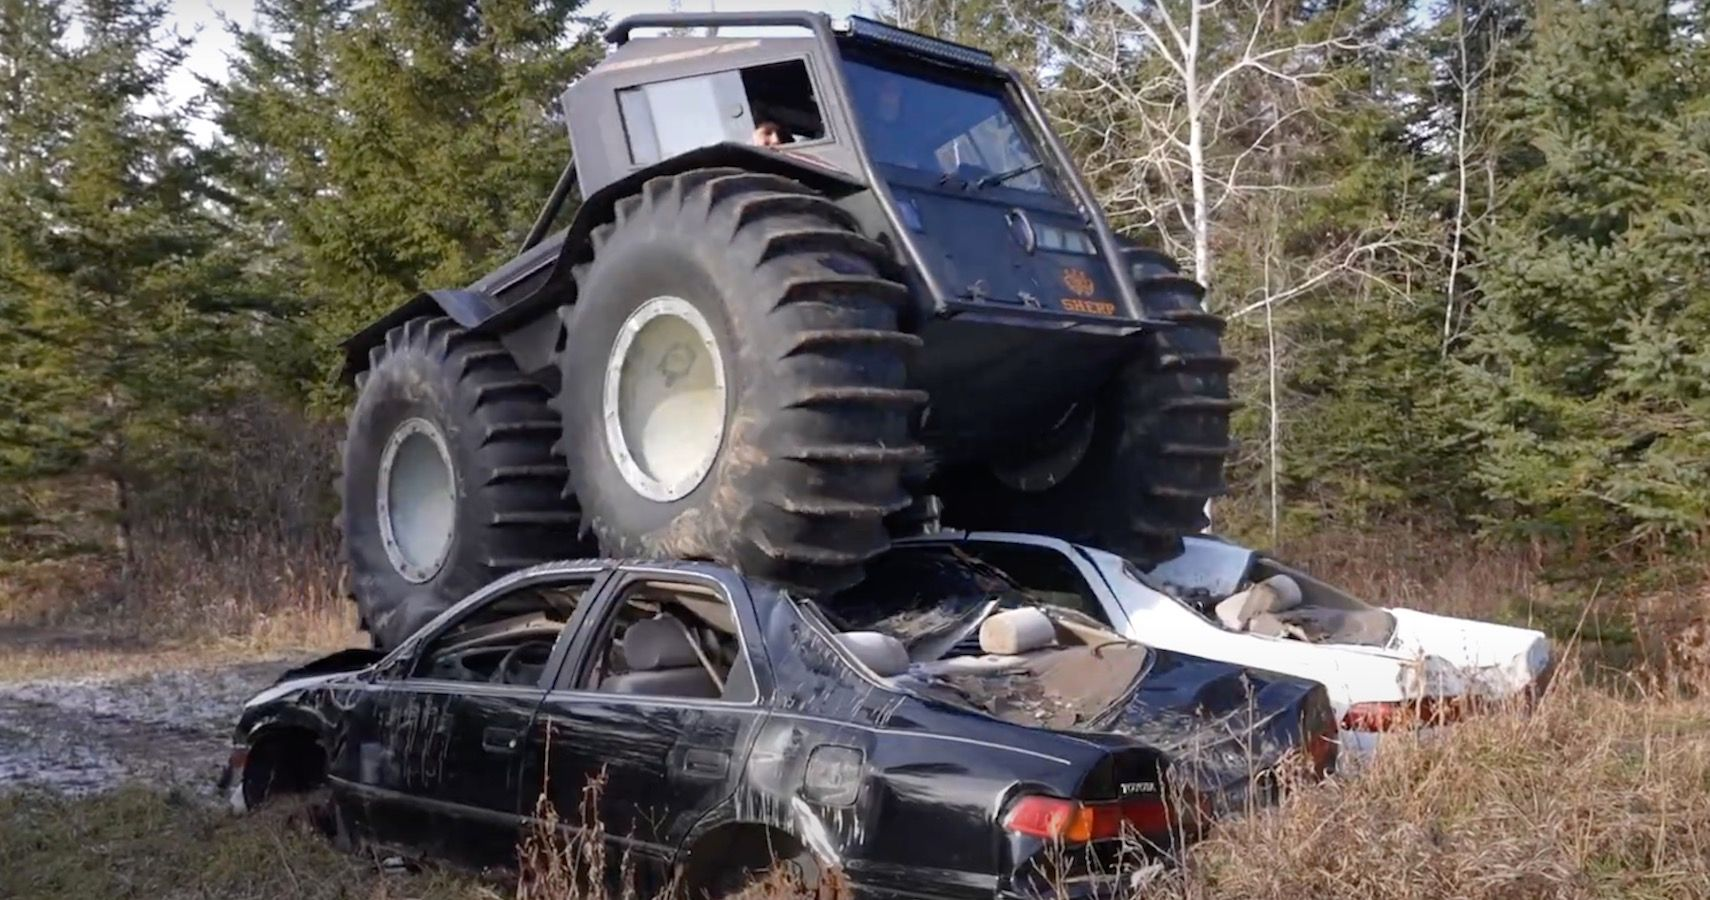 Watch A Couple YouTubers Pulverize Frozen Lakes With Giant Russian ATVs